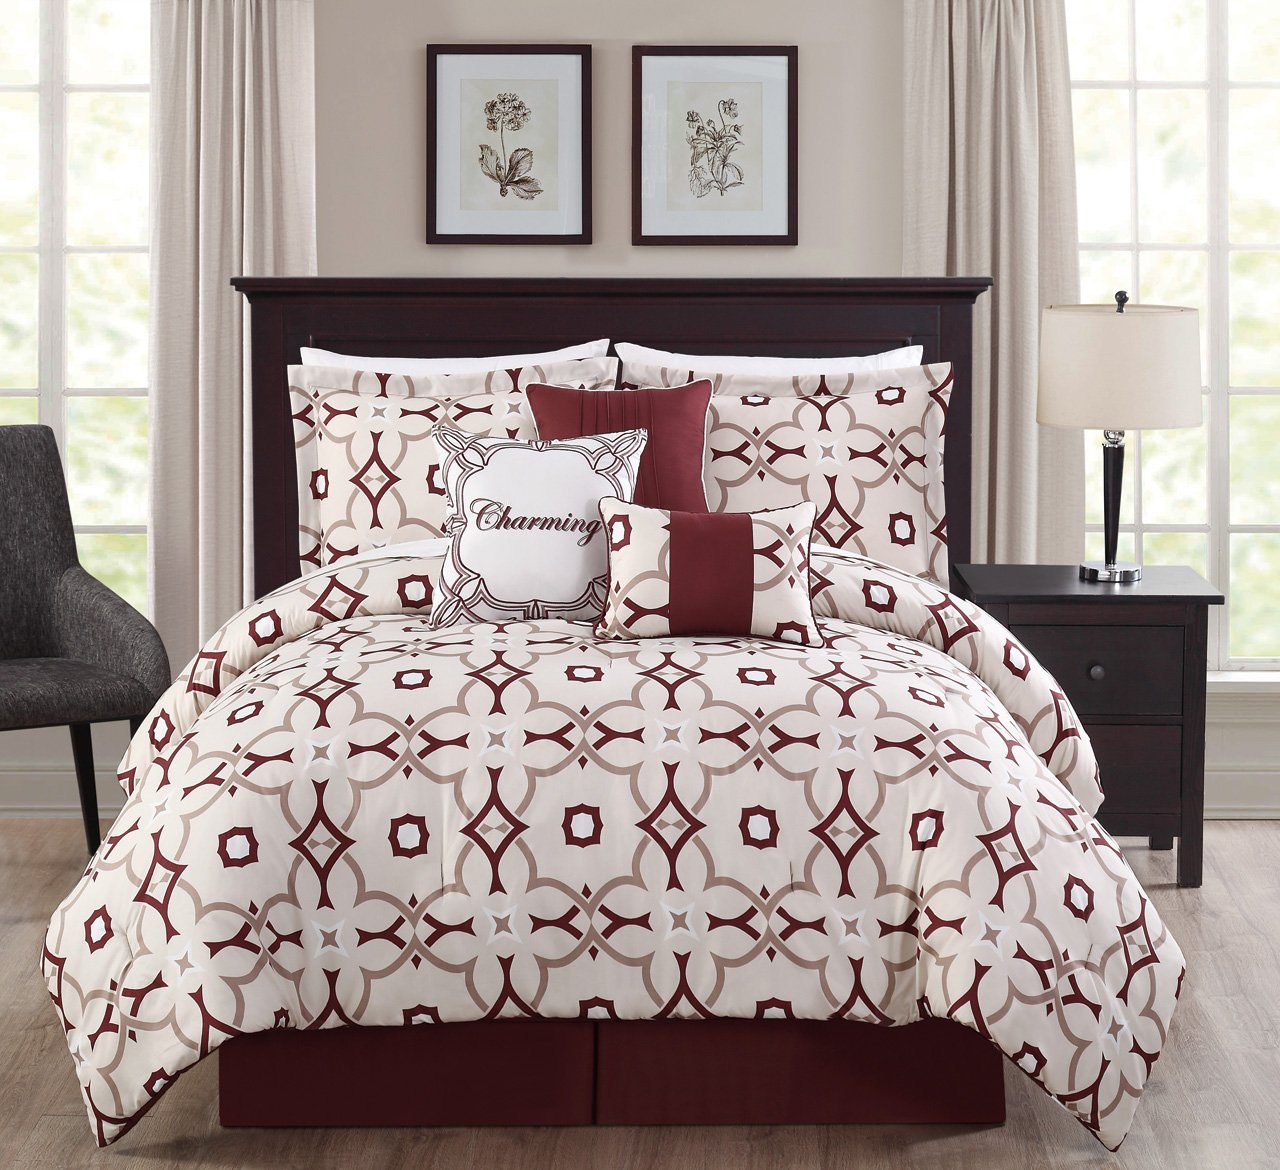 11 Piece King Charming Taupe/Burgundy/Ivory Print Bed in a Bag Set